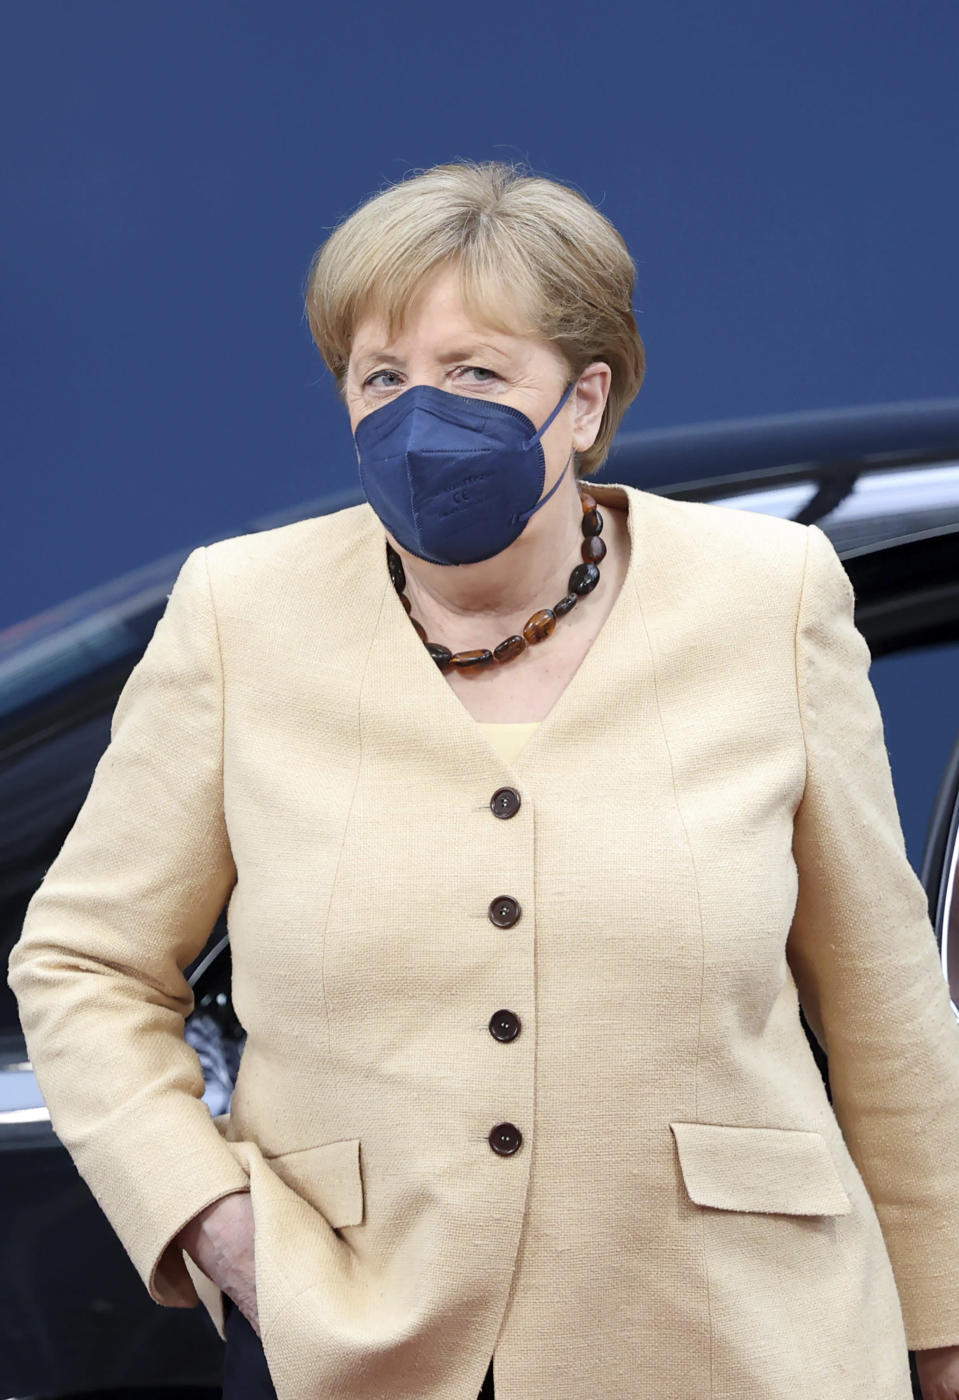 German Chancellor Angela Merkel arrives for an EU summit at the European Council building in Brussels, Friday, June 25, 2021. EU leaders are discussing the economic challenges the bloc faces due to coronavirus restrictions and will review progress on their banking union and capital markets union. (Aris Oikonomou, Pool Photo via AP)